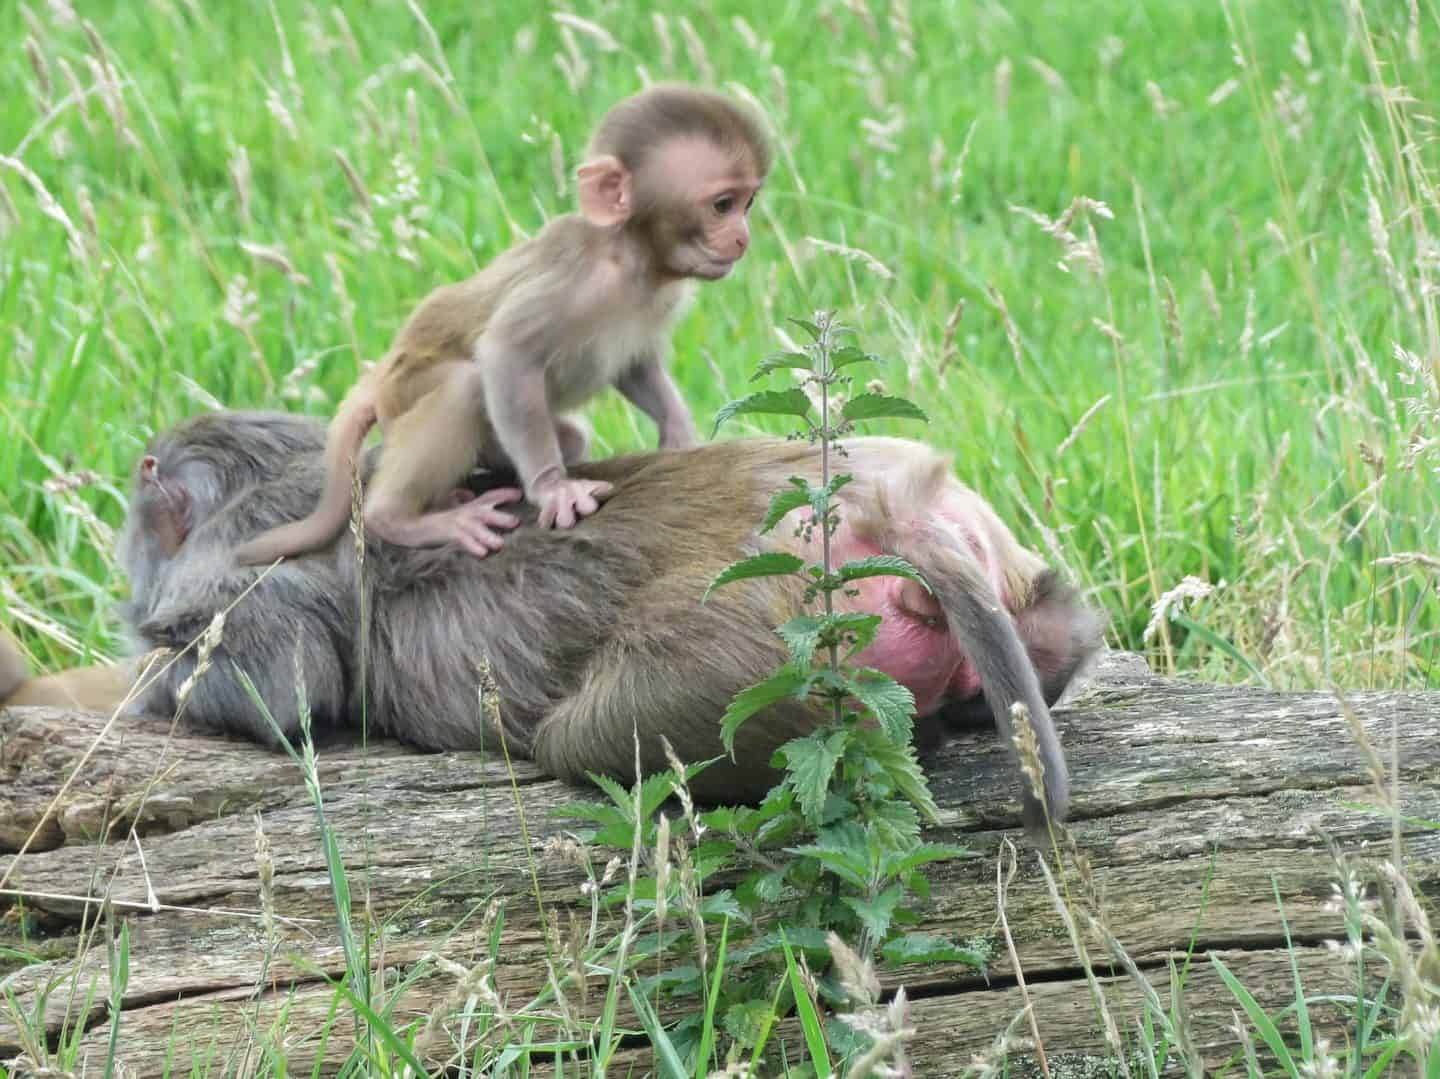 Baby monkey on adult monkey's back at Longleat Safari Park